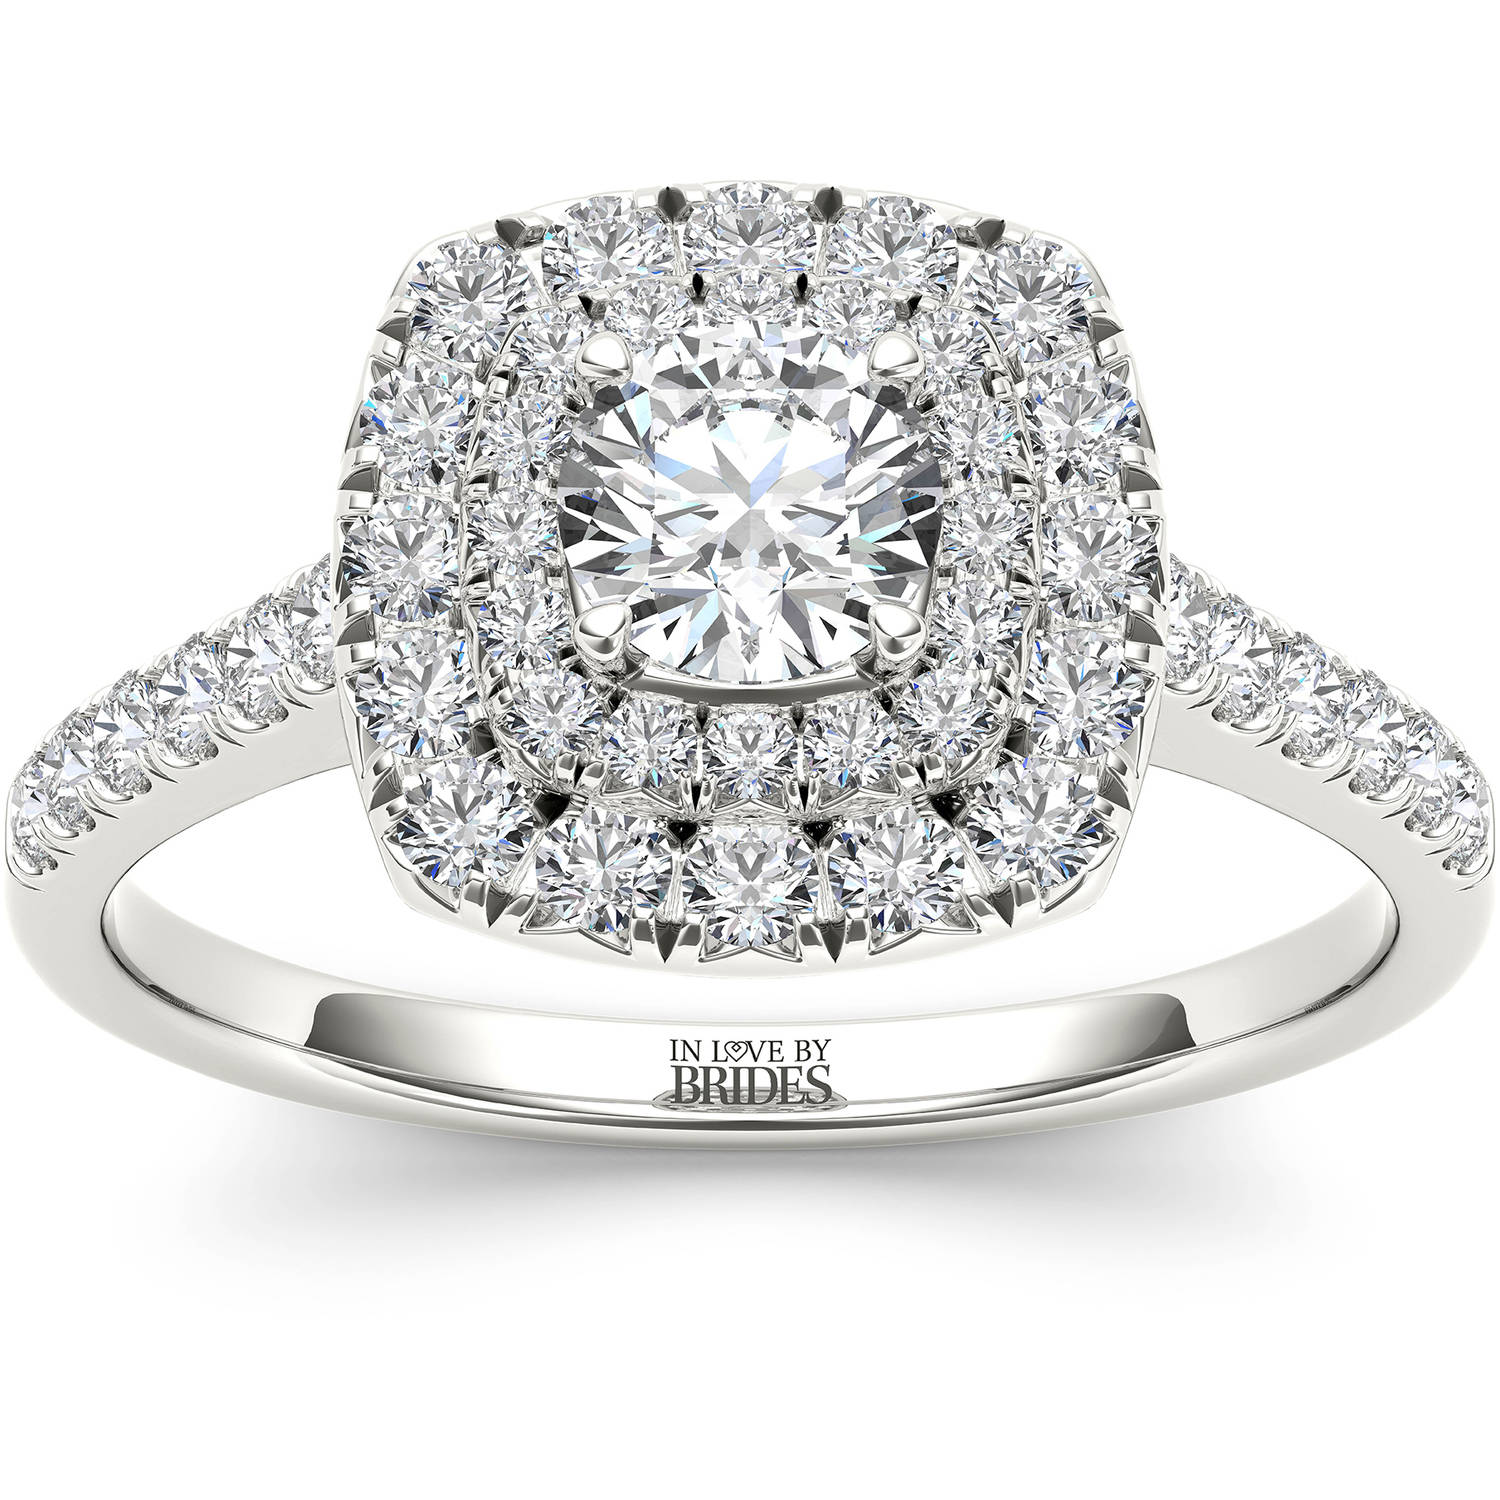 IN LOVE BY BRIDES 1.00 Carat T.W. Certified Diamond Cushion Double Halo 14kt White Gold Engagement Ring